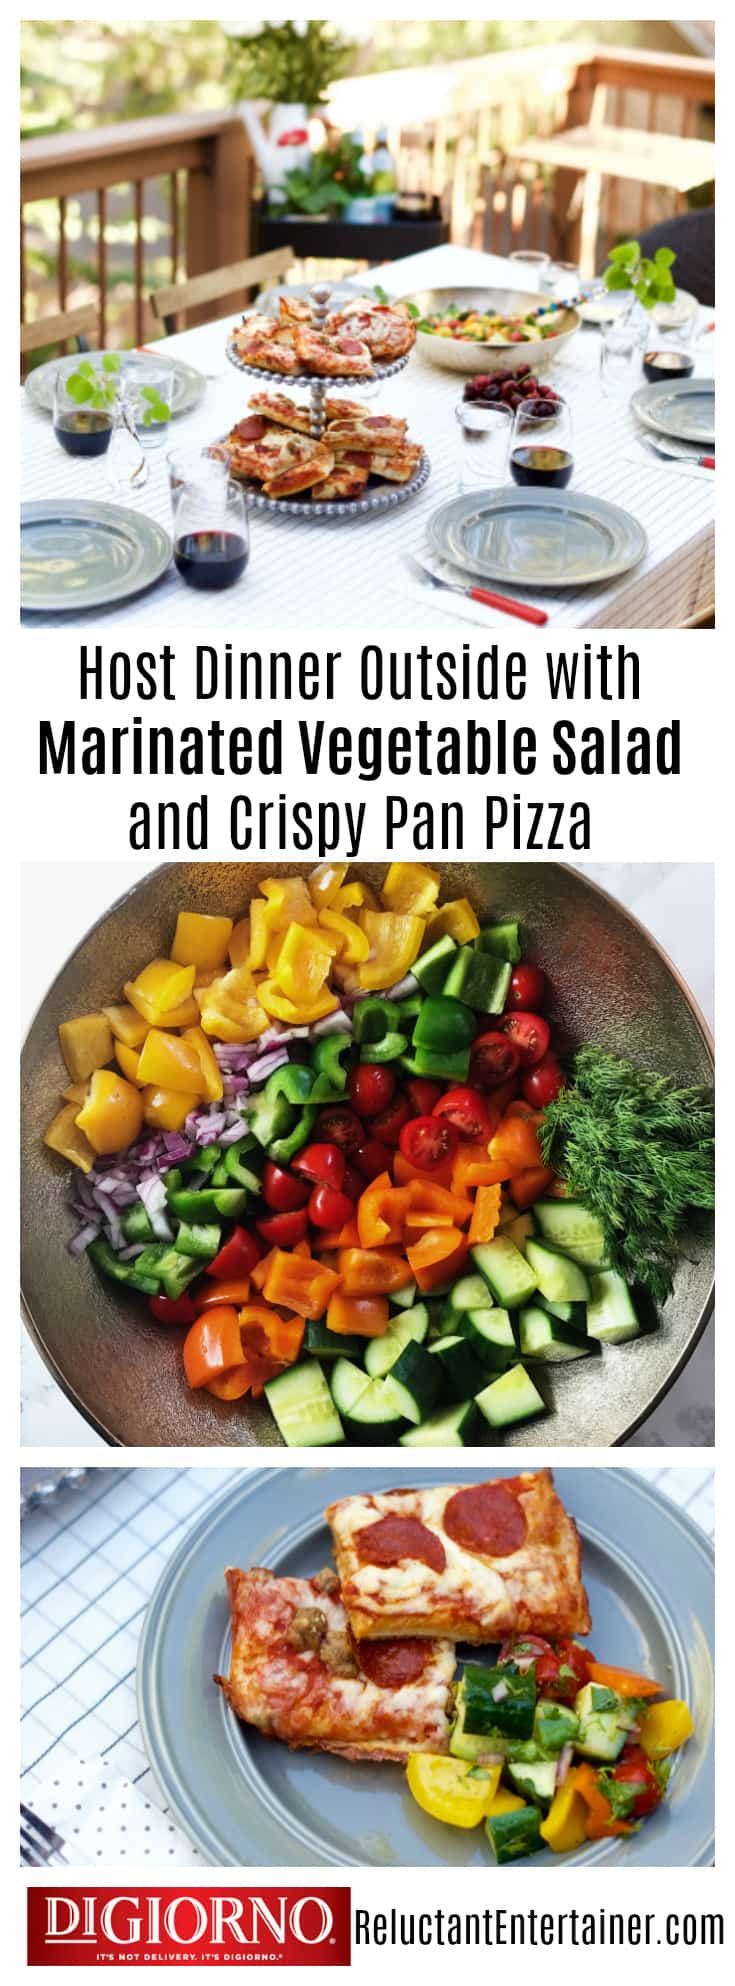 DiGiorno Crispy Pan Pizza with Marinated Summer Veggie Salad